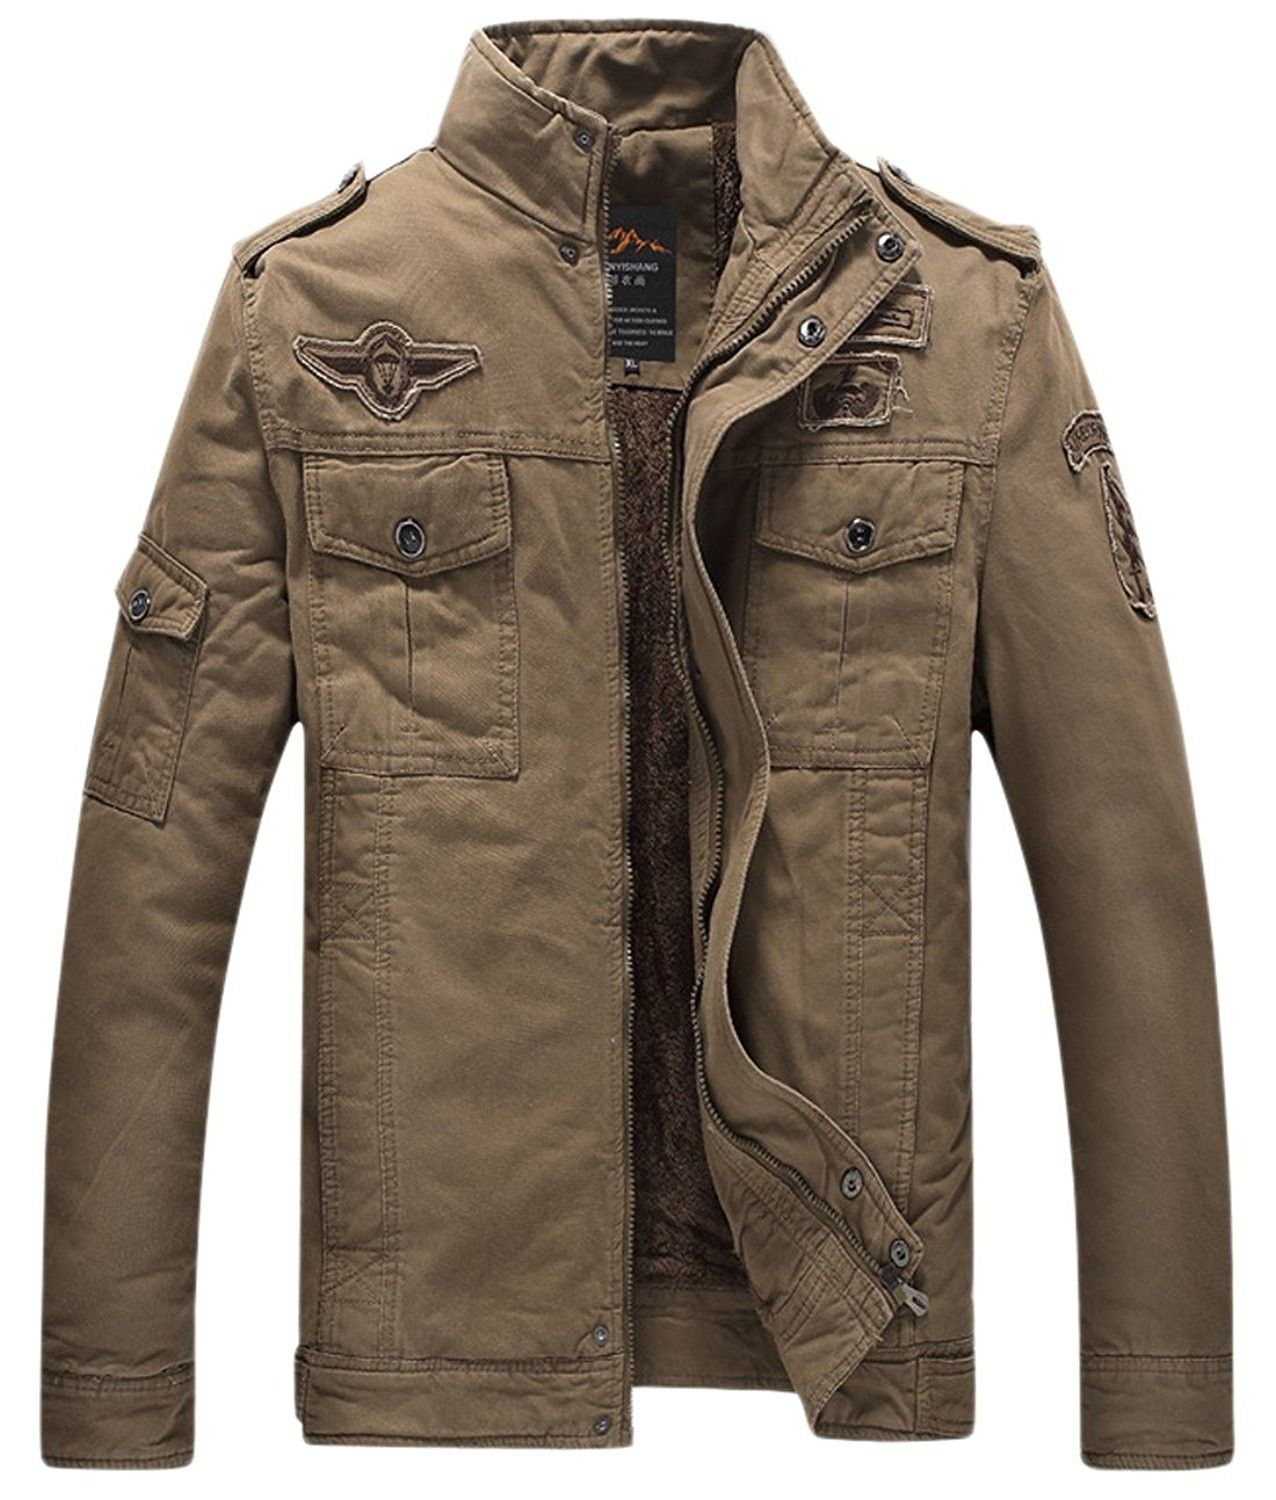 Men S Fashion Military Sherpa Lined Zip Front Insulated Cotton Jacket Khaki Cl12mr6szgh Mens Jackets Casual Mens Military Jacket Military Jacket